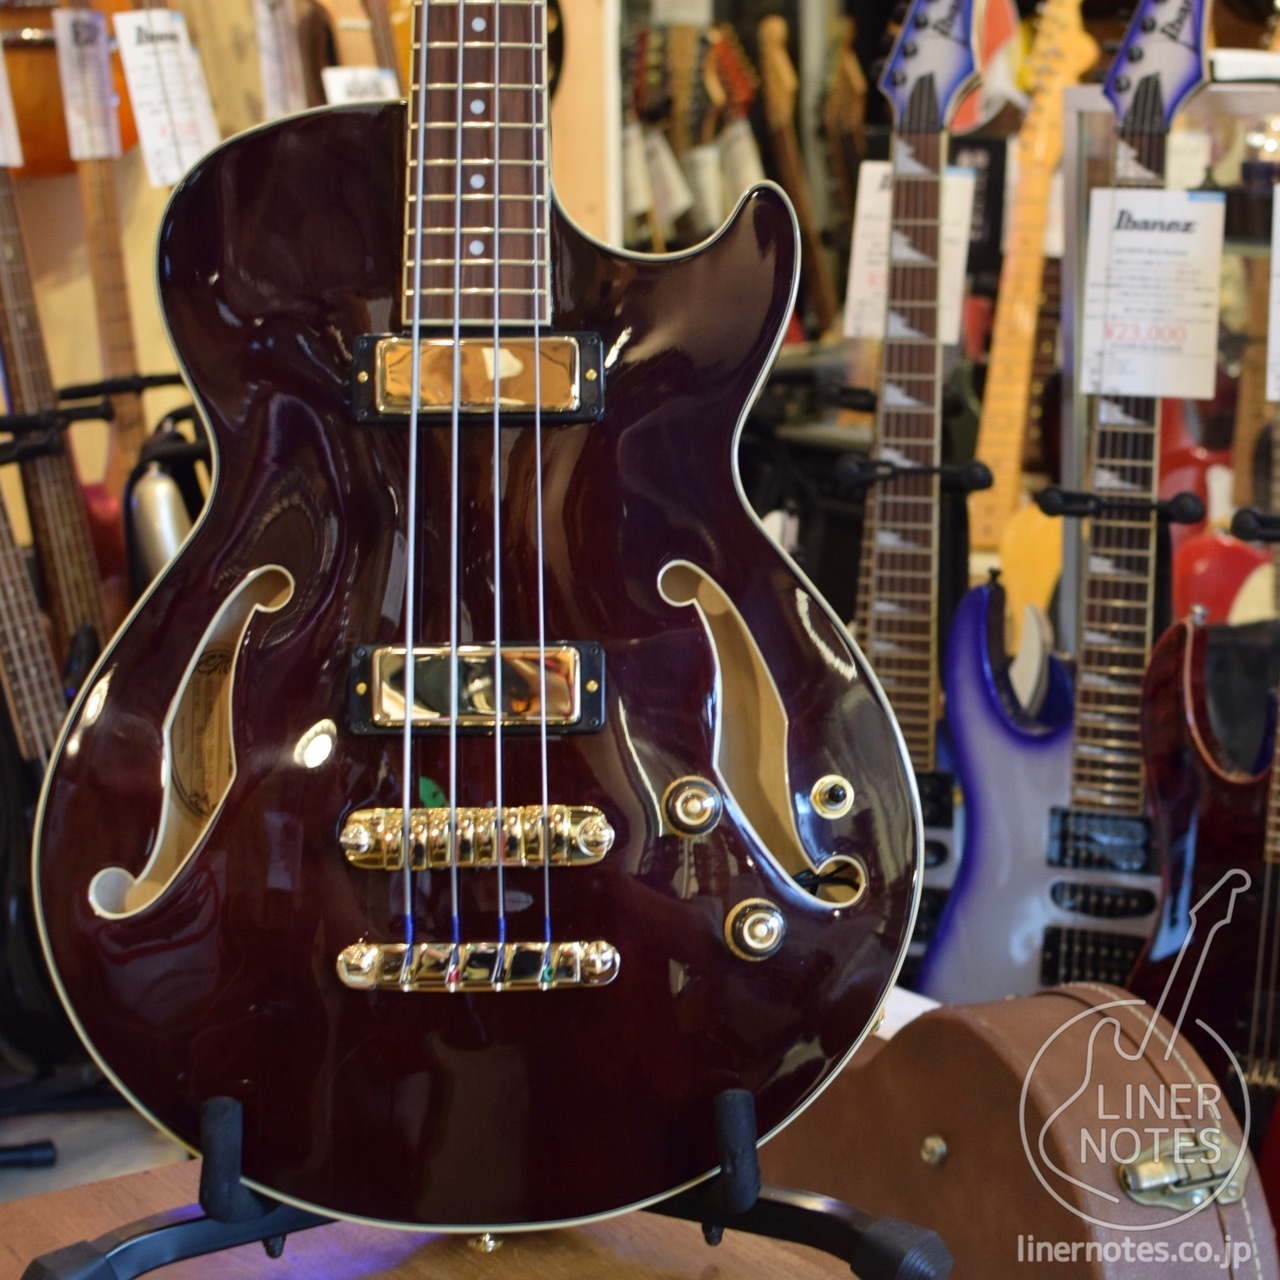 Ibanez Artcore Bass AGB200 (Transparent Brown)